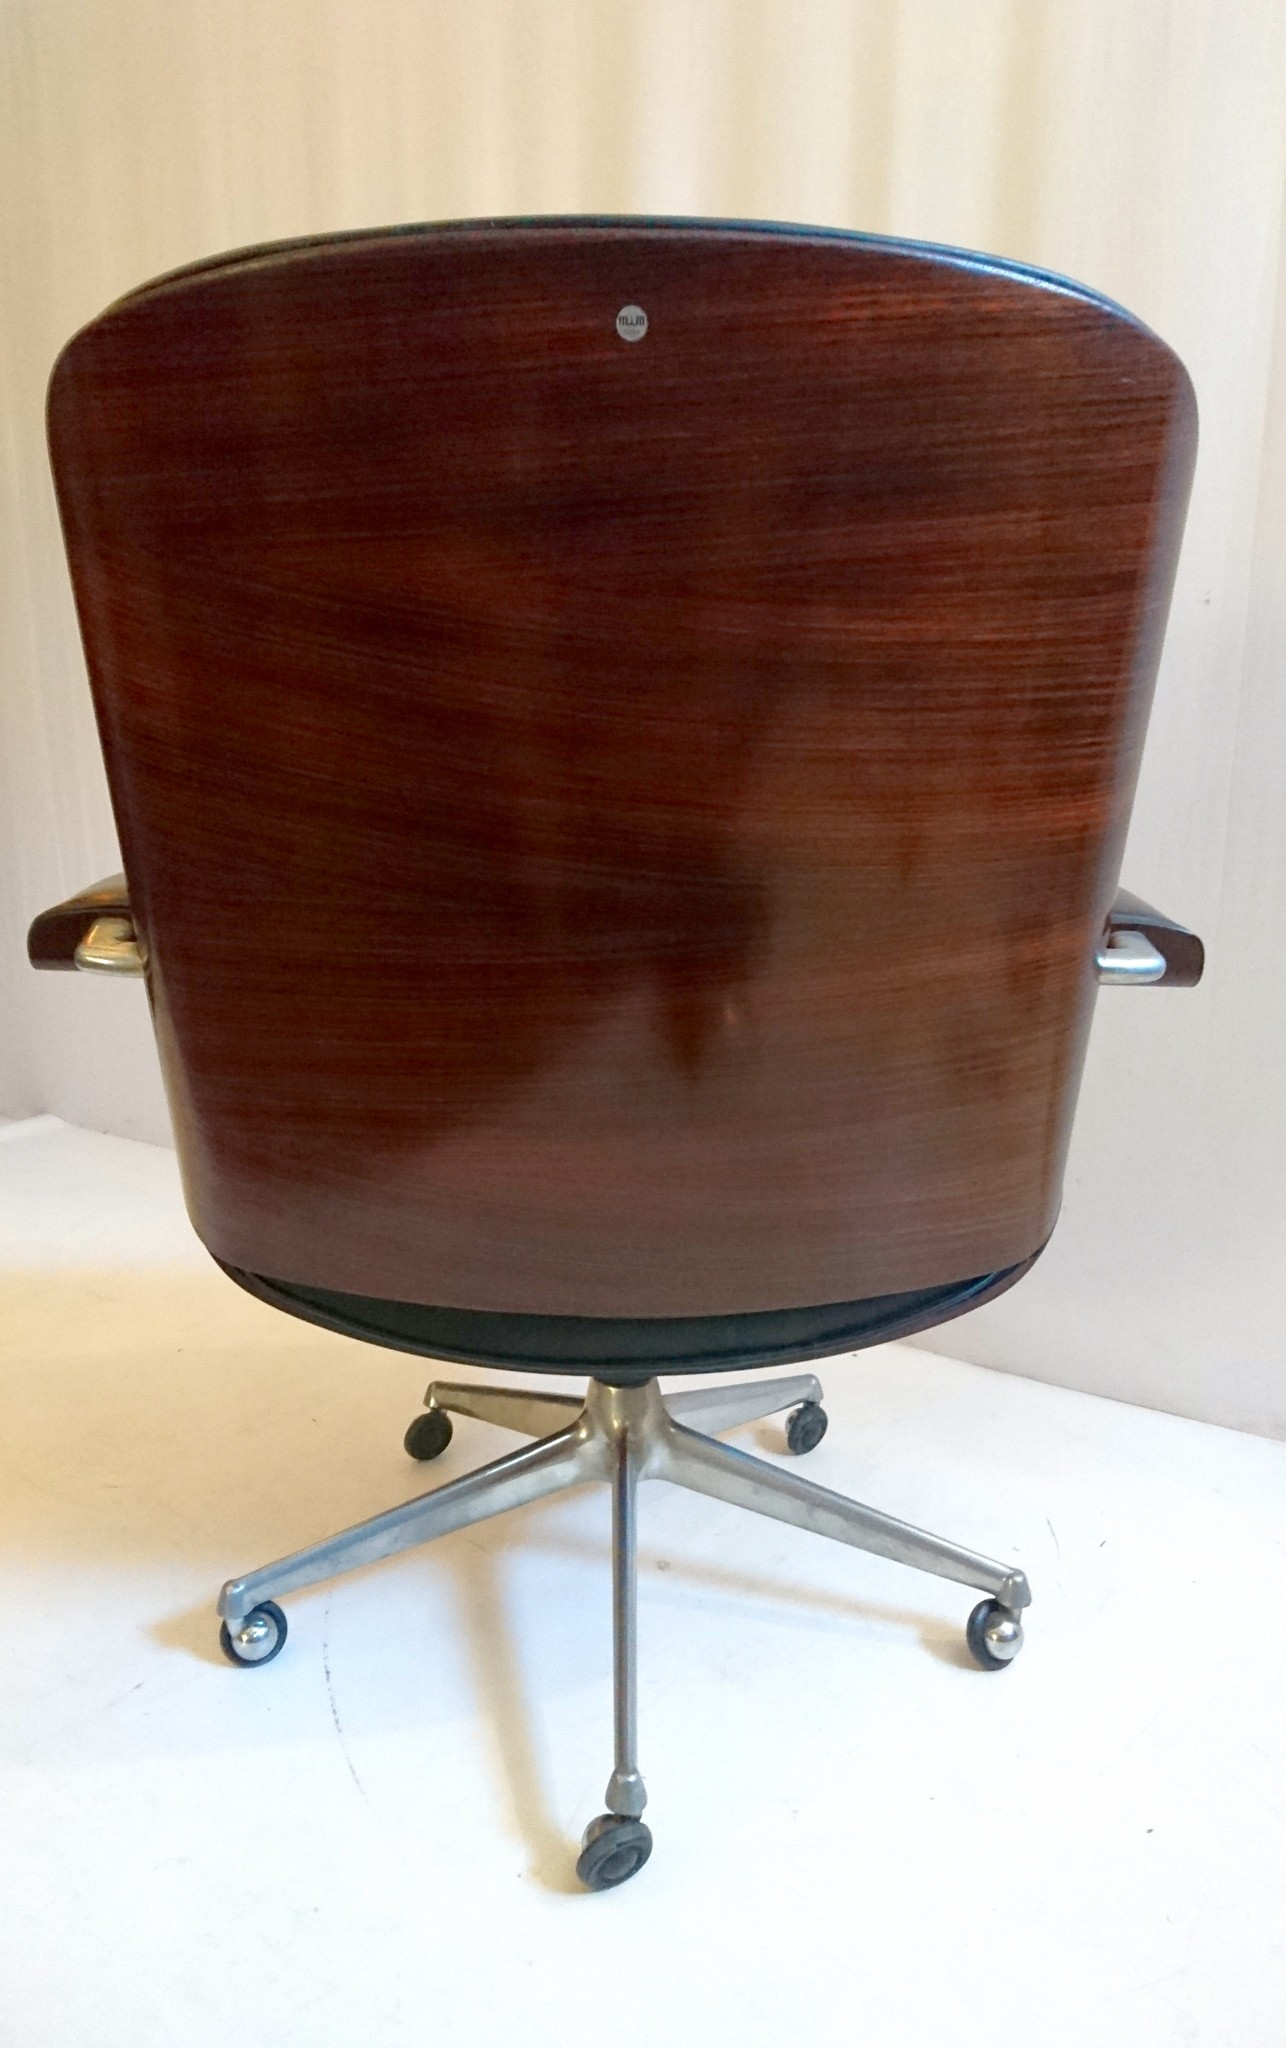 Swivel Desk Chair By Ico Parisi For Mim Rome 1950s